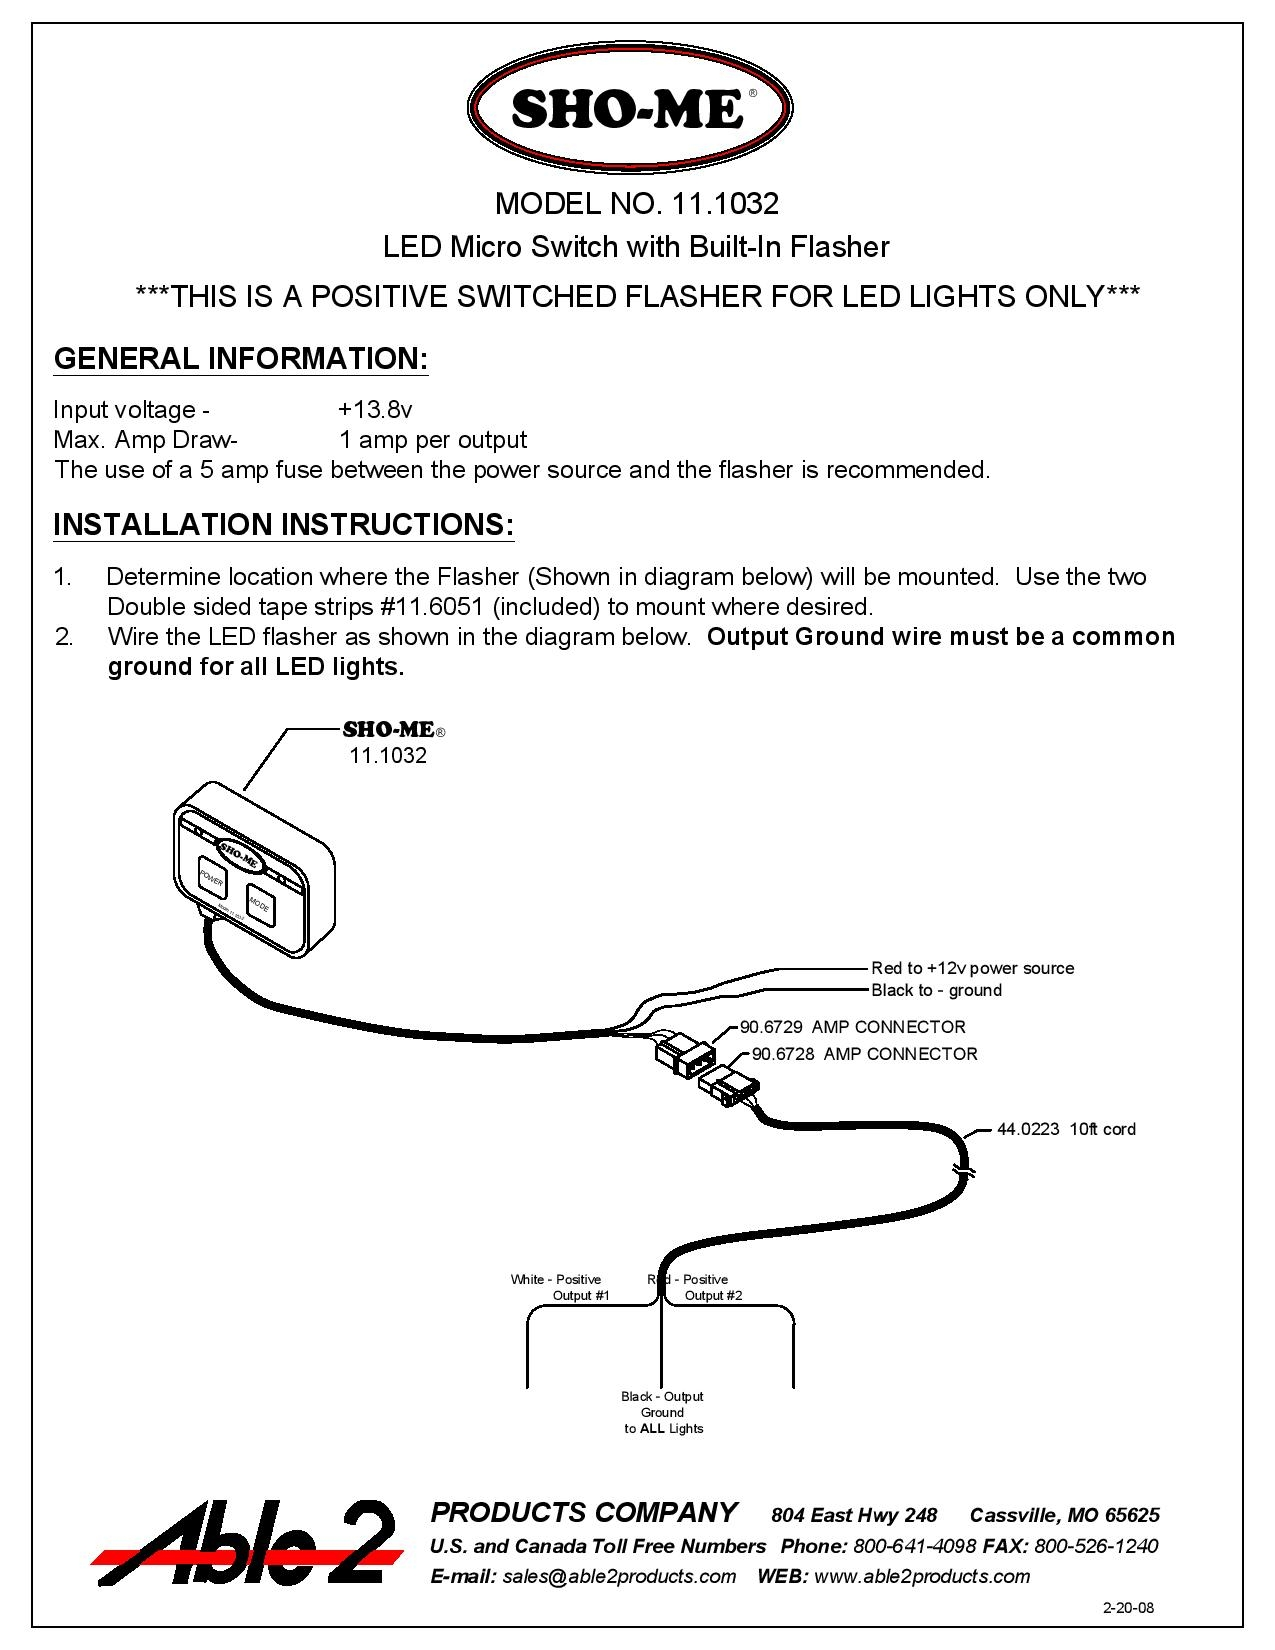 Sho Me 11.1032 instructions page 001 sho me led micro switch with built in flasher sho-me led flasher wire diagram at reclaimingppi.co